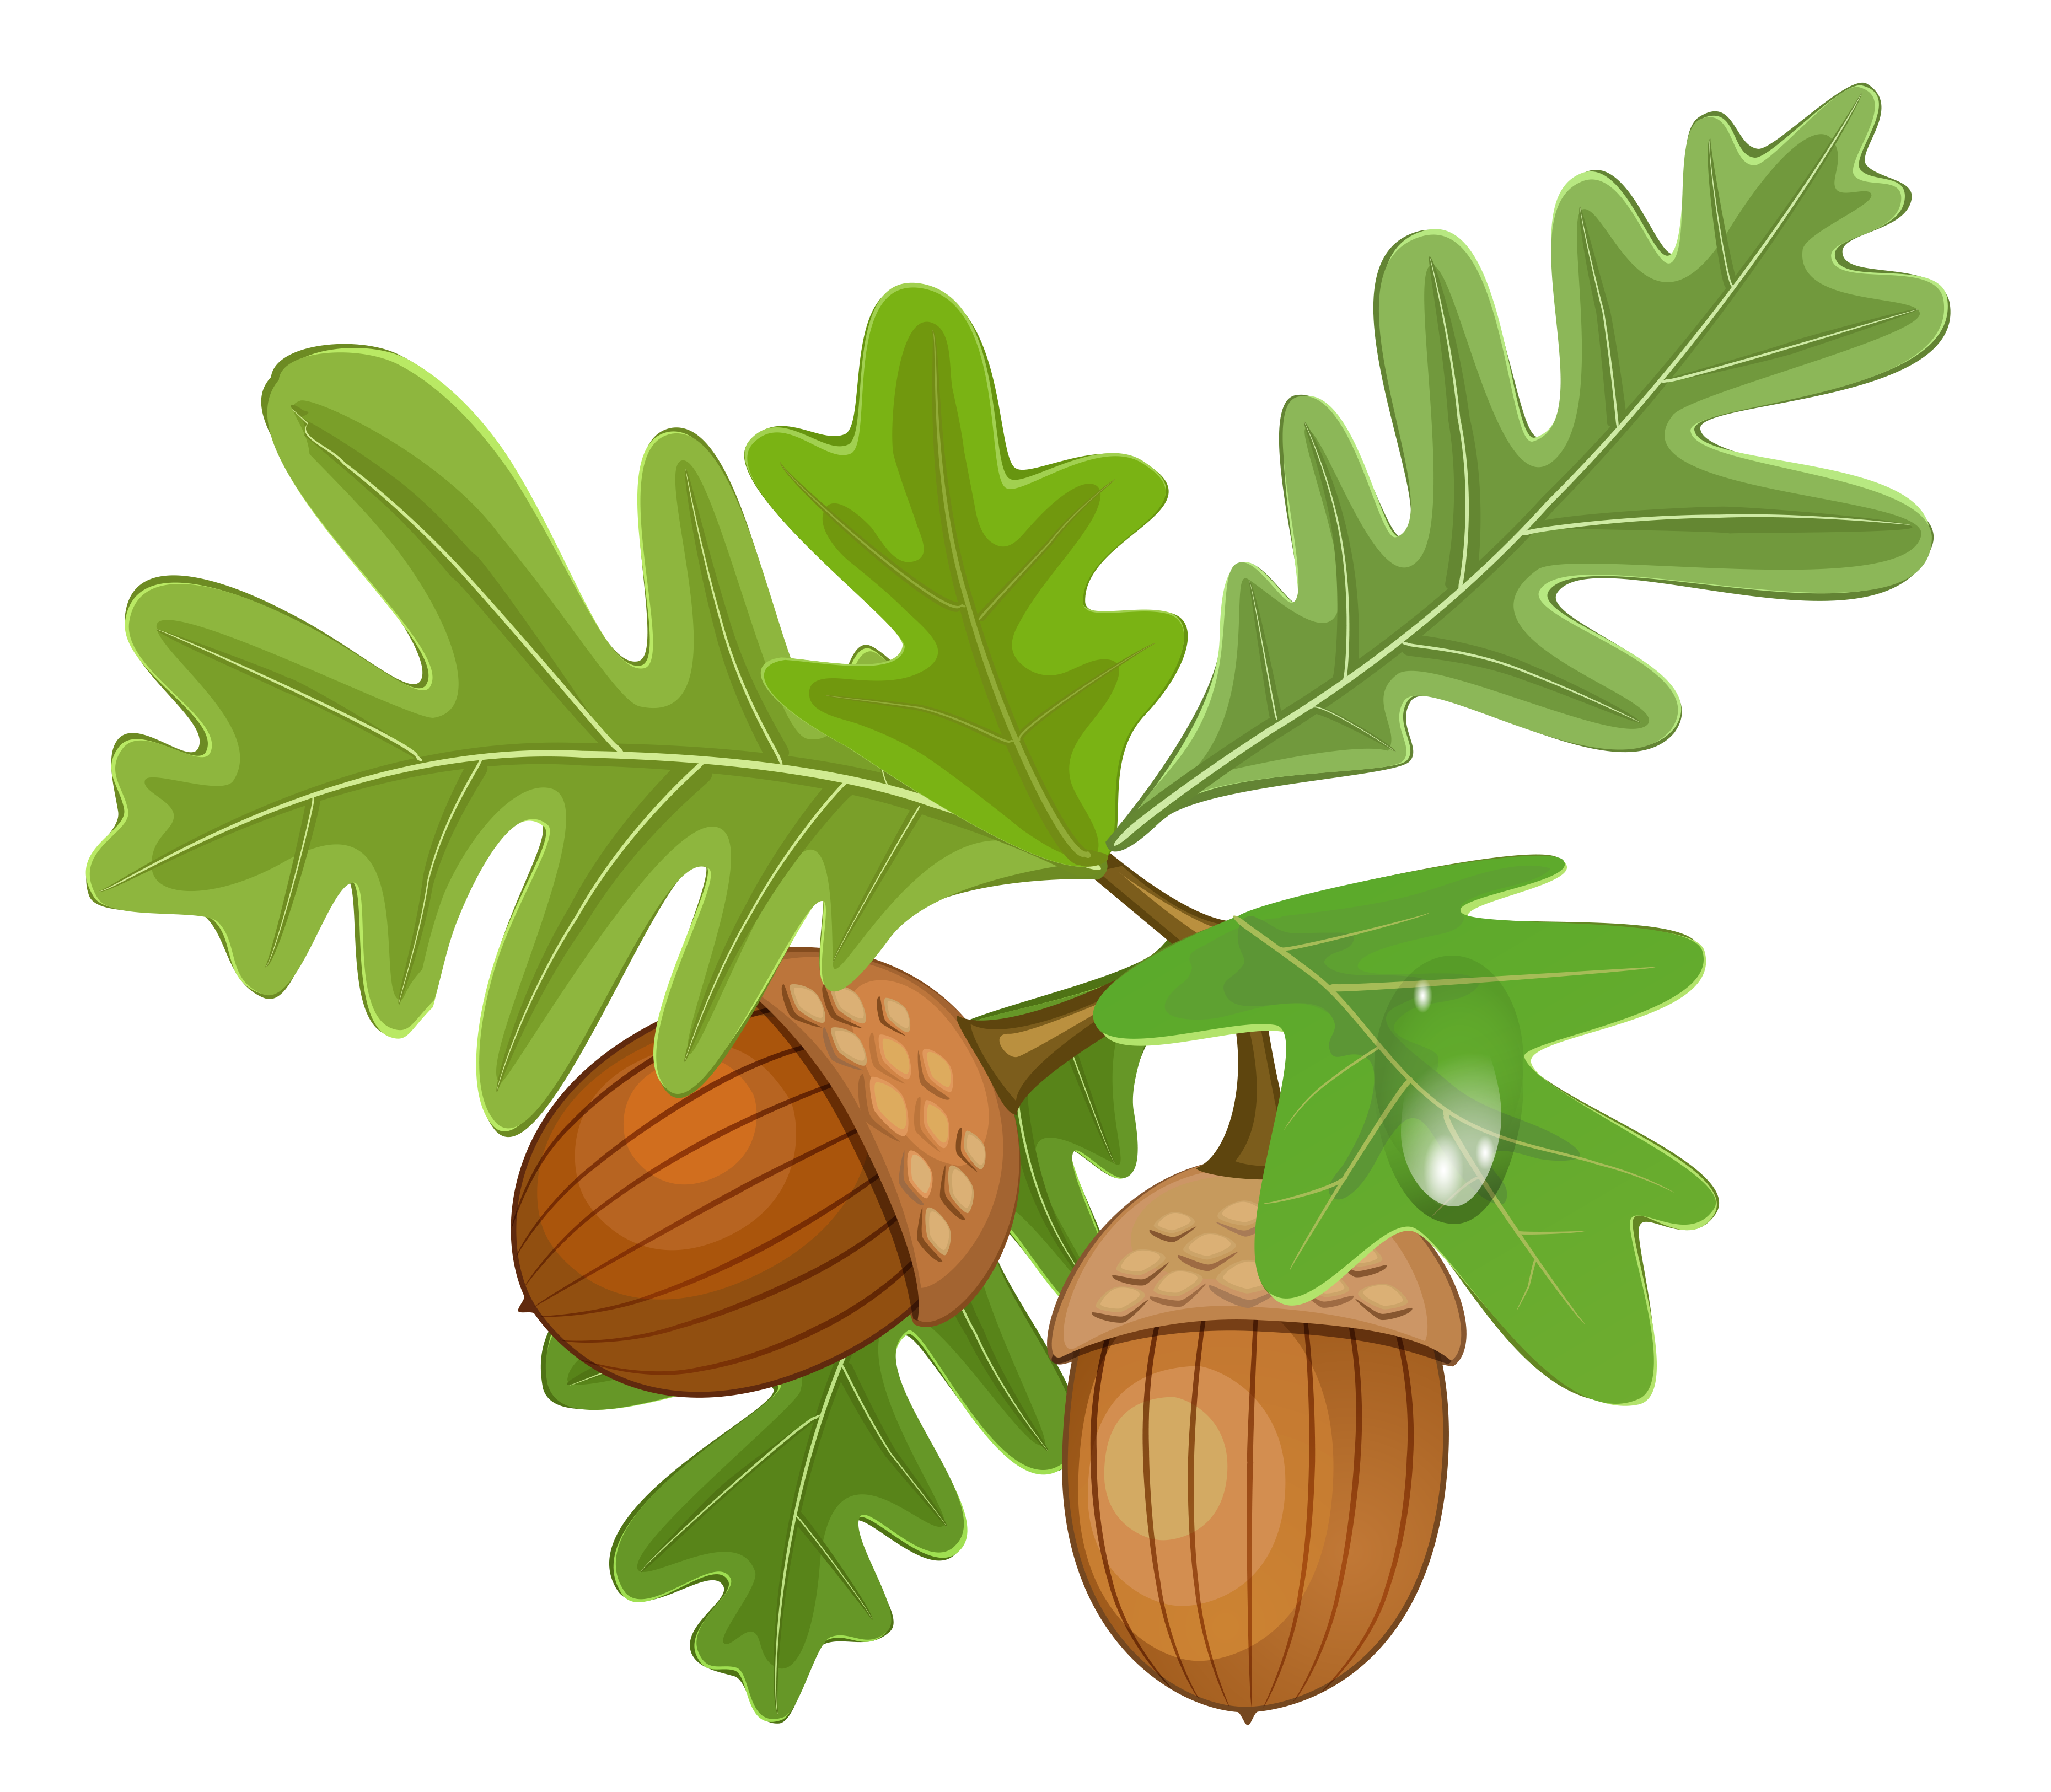 Pin by Next on Clipart Acorn image, Acorn, Clip art